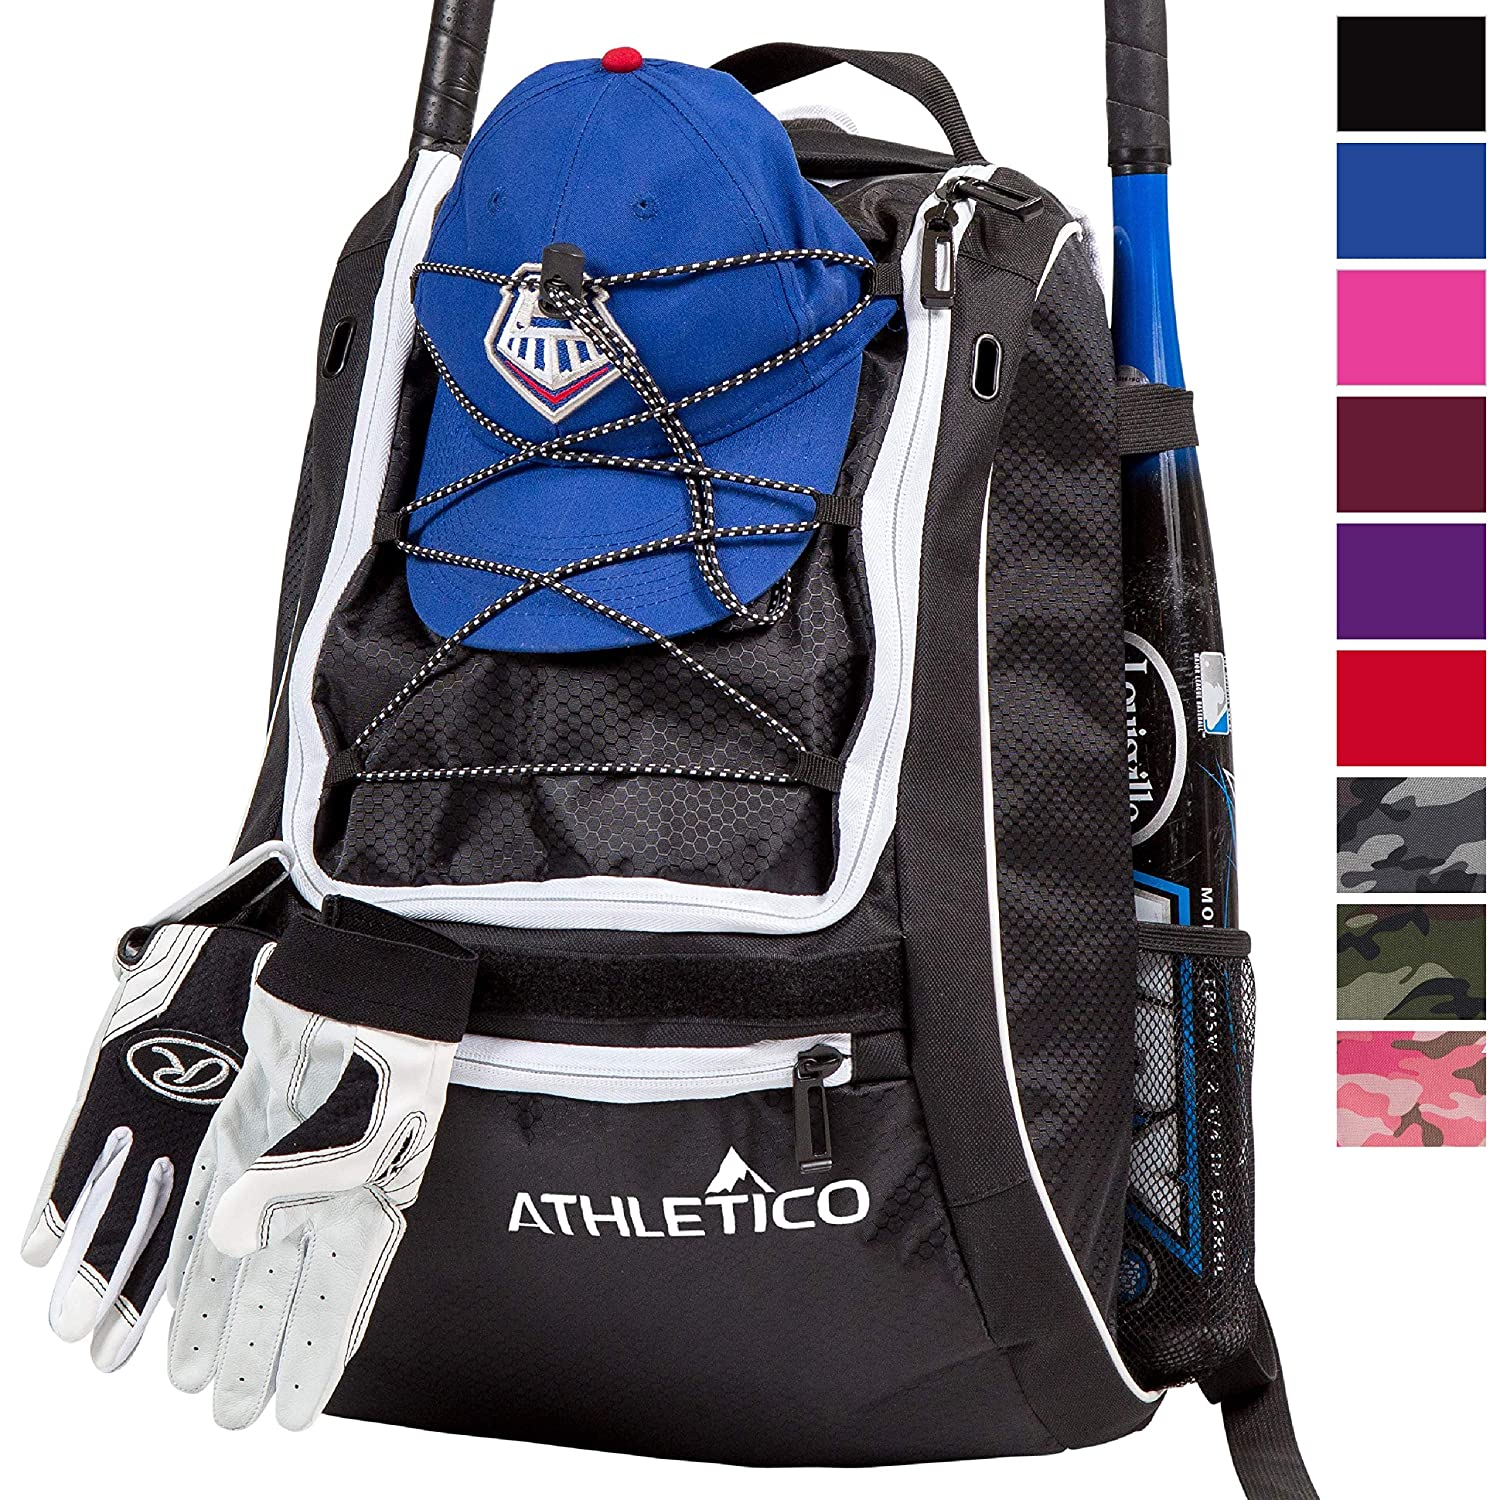 ae9d85dcb36f Athletico Baseball Bat Bag - Backpack for Baseball, T-Ball & Softball  Equipment & Gear for Youth and Adults | Holds Bat, Helmet, Glove, Shoes  |Shoe ...